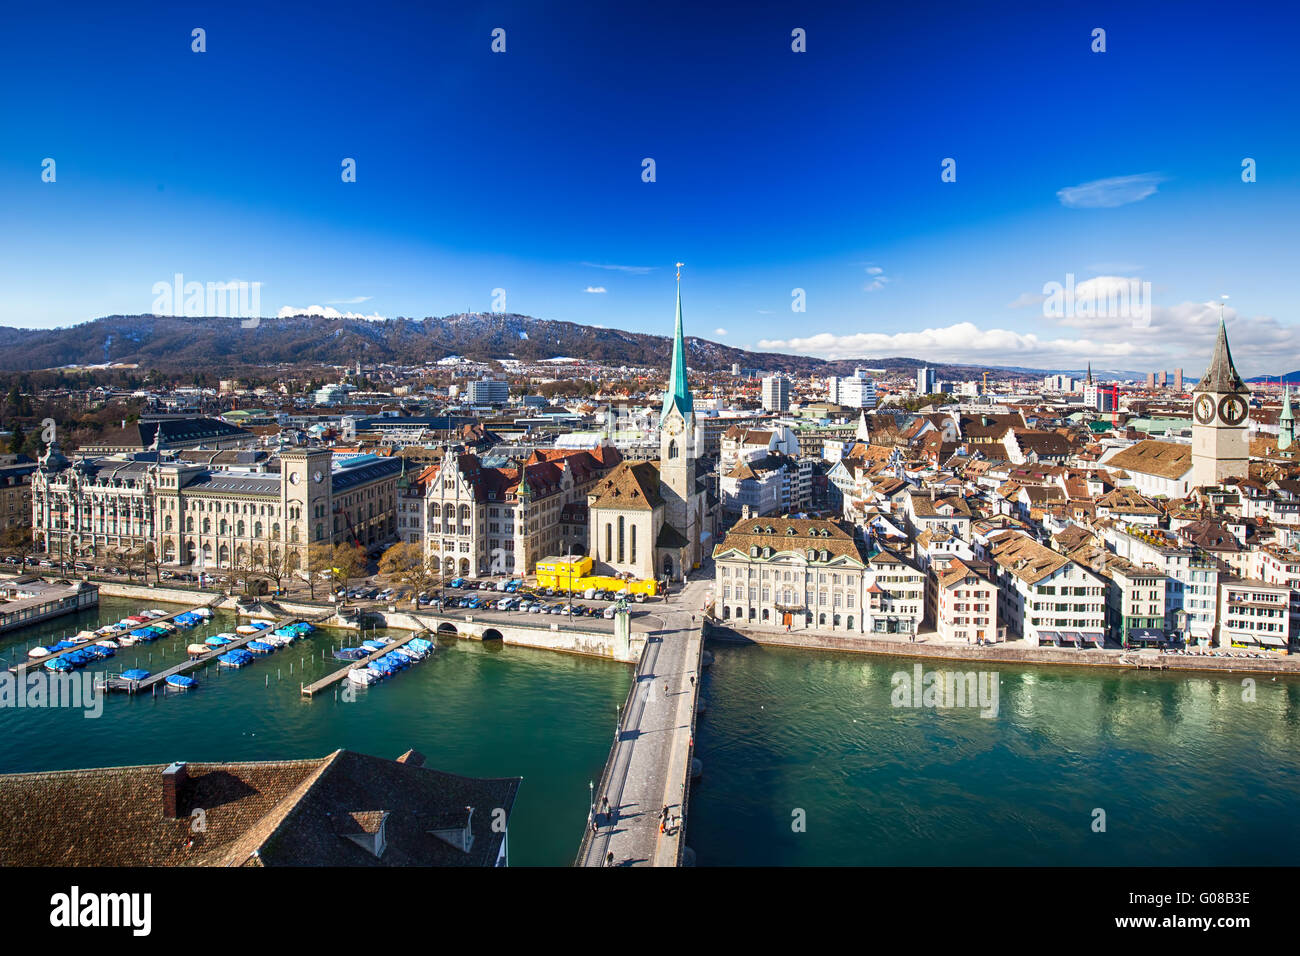 ZUERICH, SWITZERLAND - February 11, 2016 - View of historic Zurich city center with famous Grossmunster Church and - Stock Image